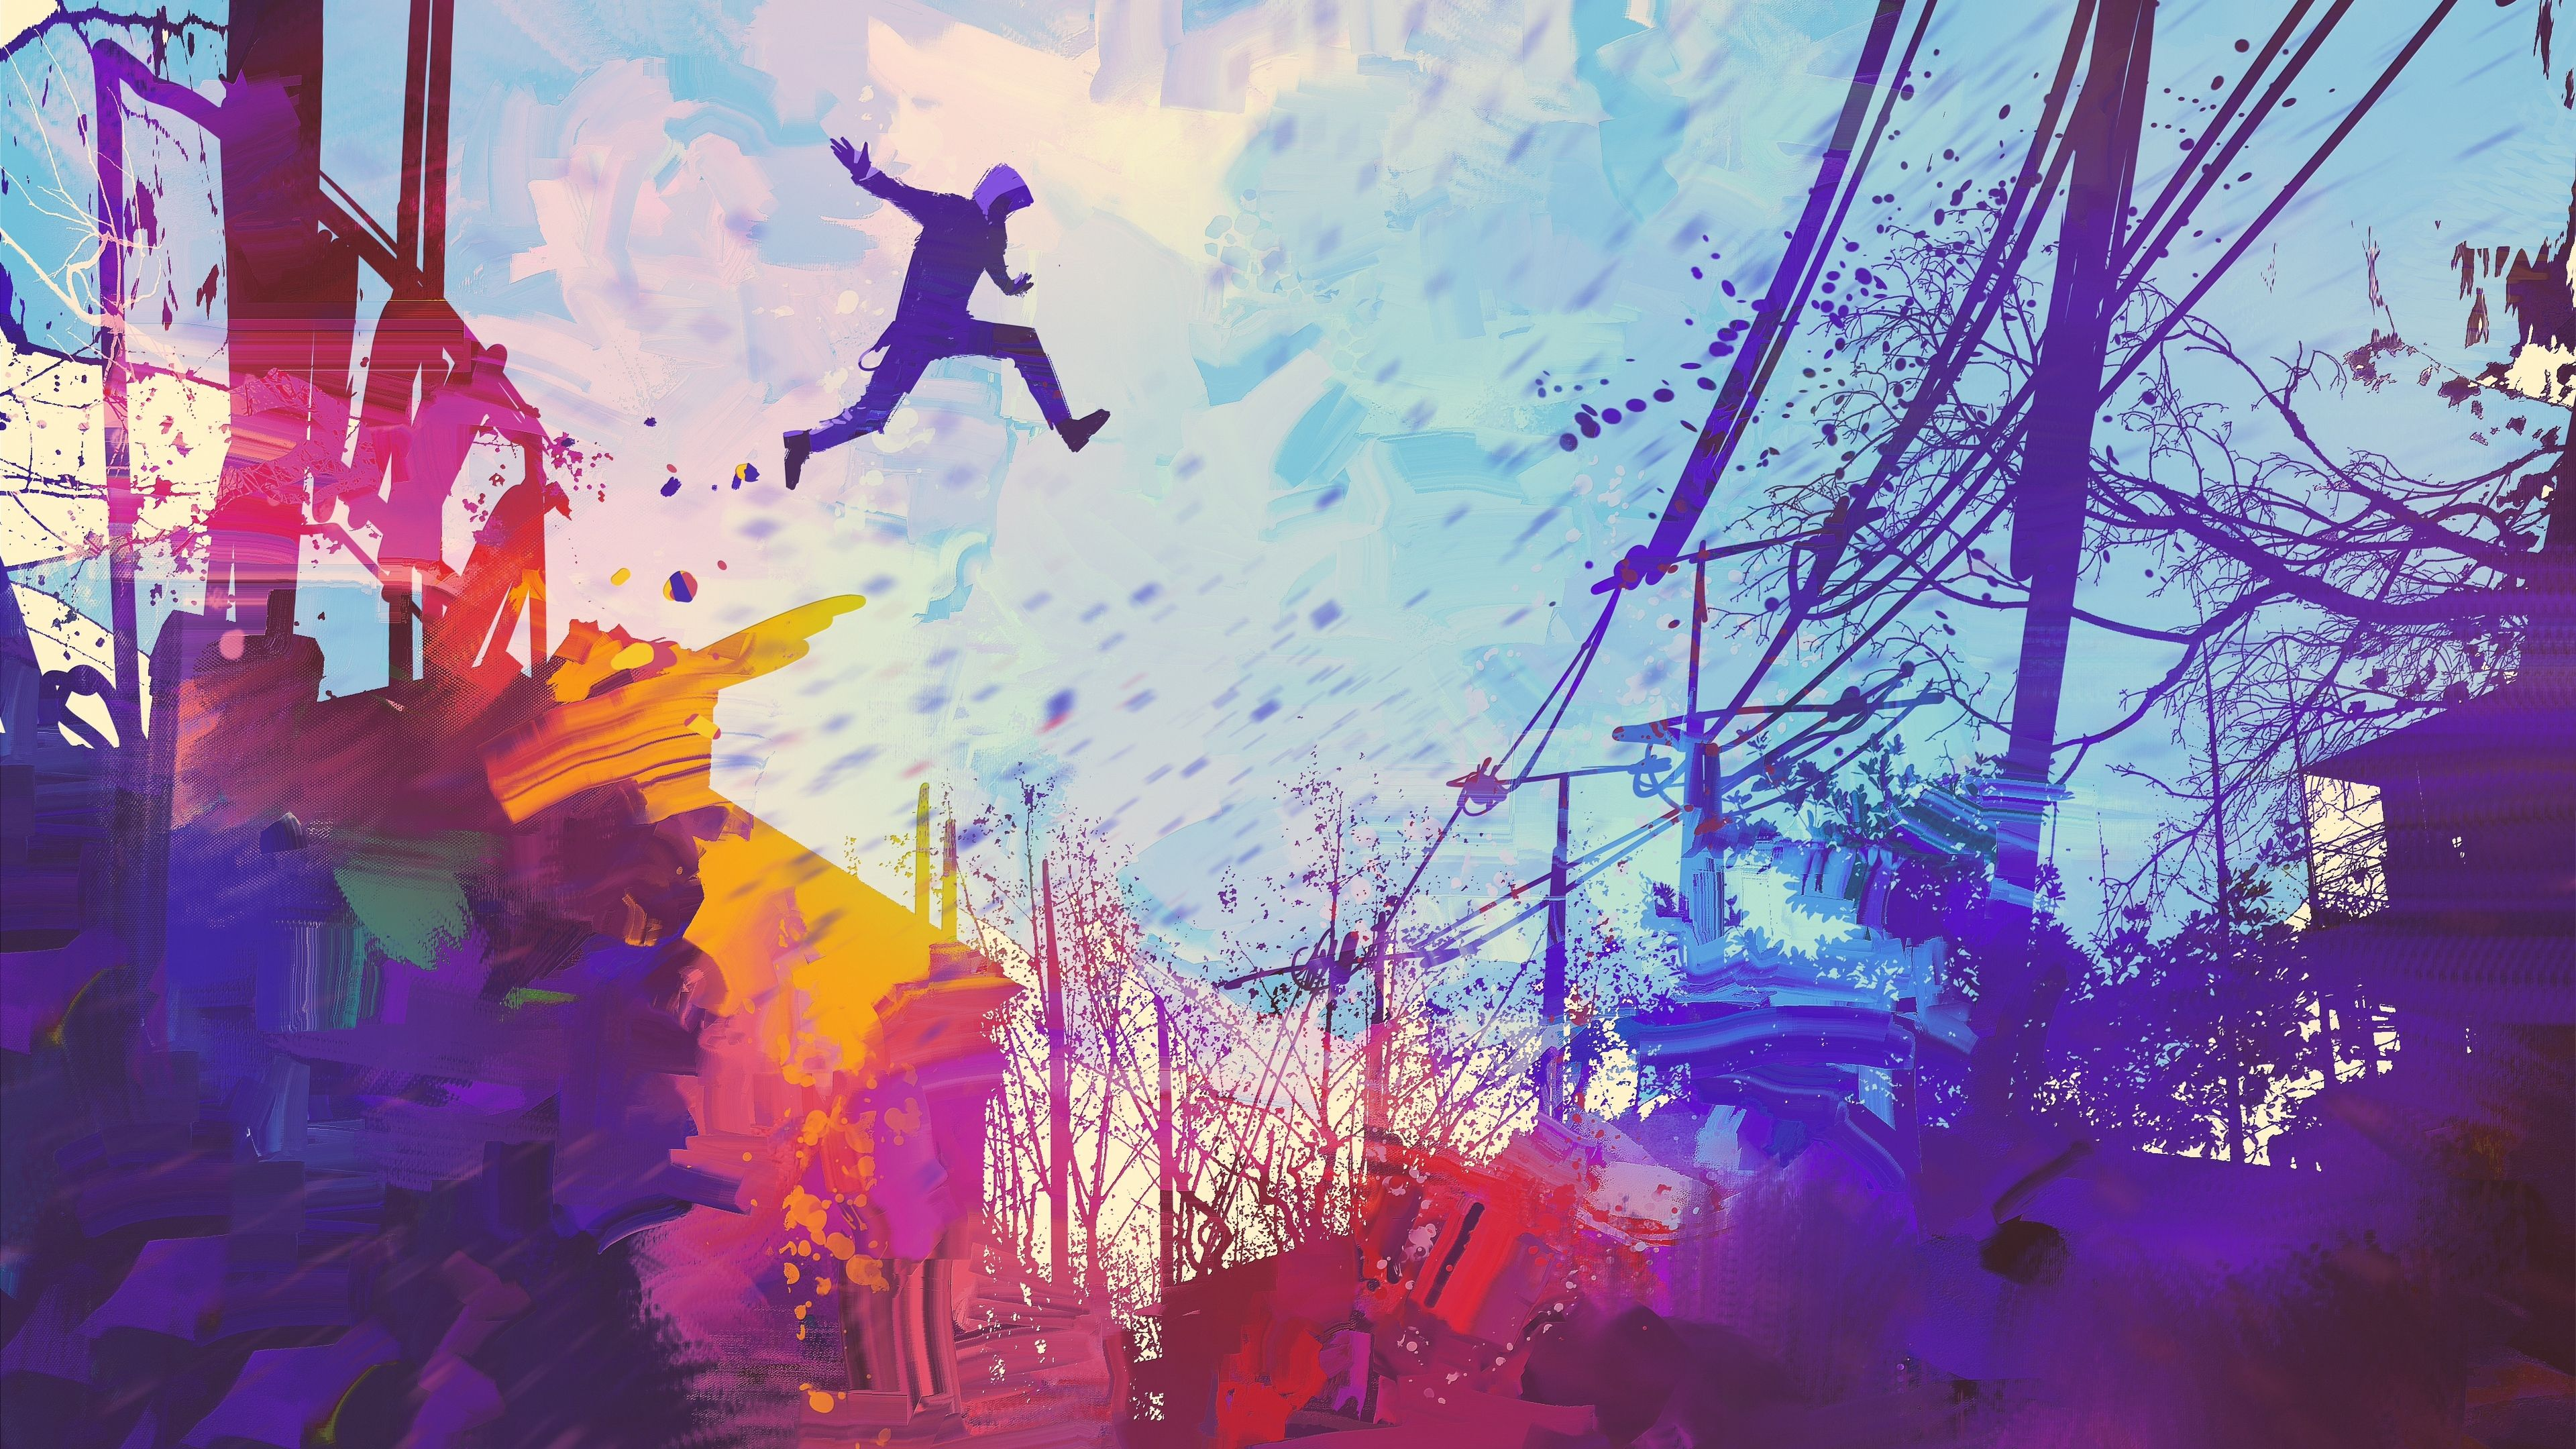 Wallpaper 4k Man Jumping Roof Abstract Illustration Painting 4k 4k